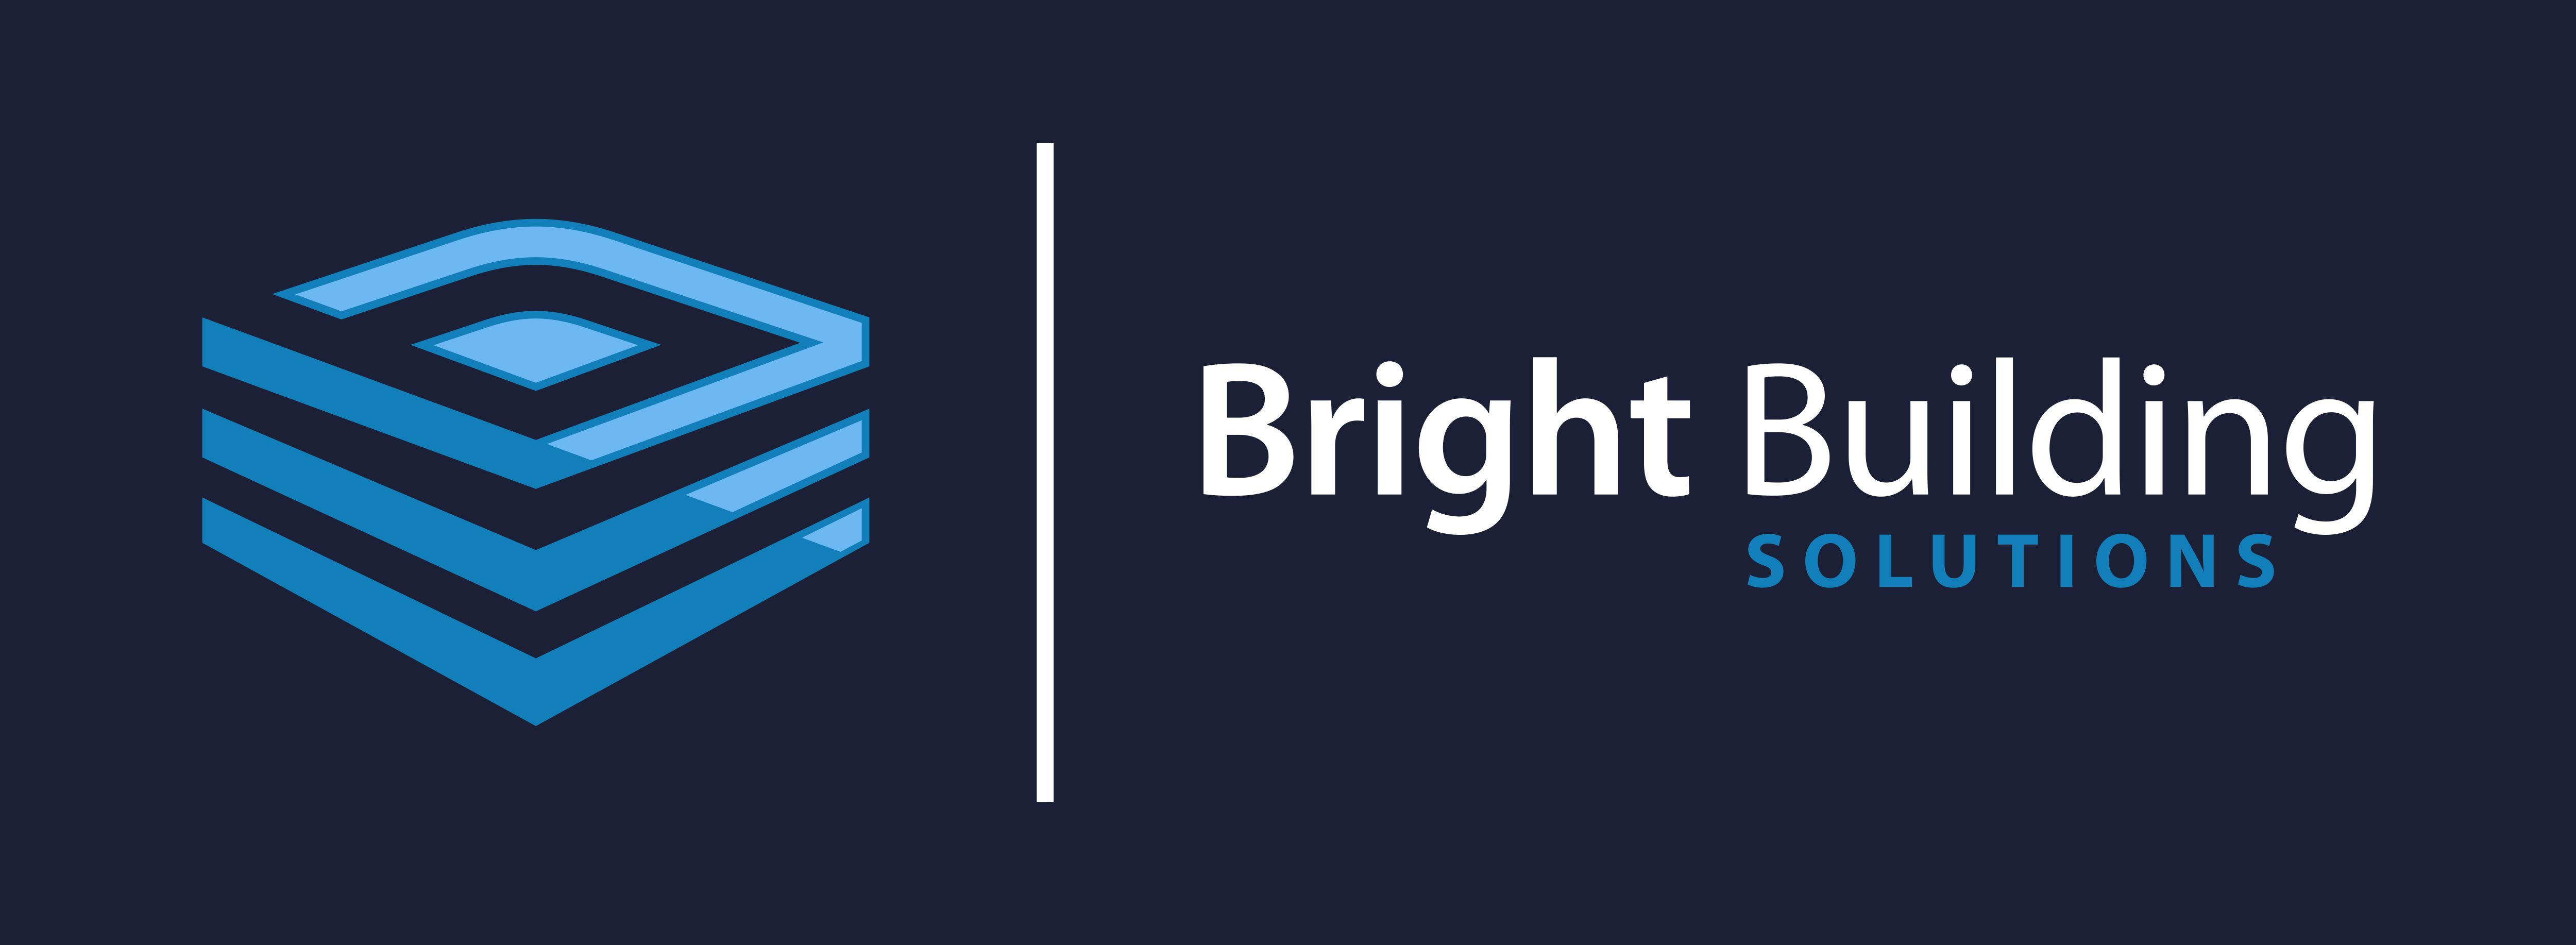 Bright Building Solutions needs a clean, fresh and powerful logo for their maintenance company